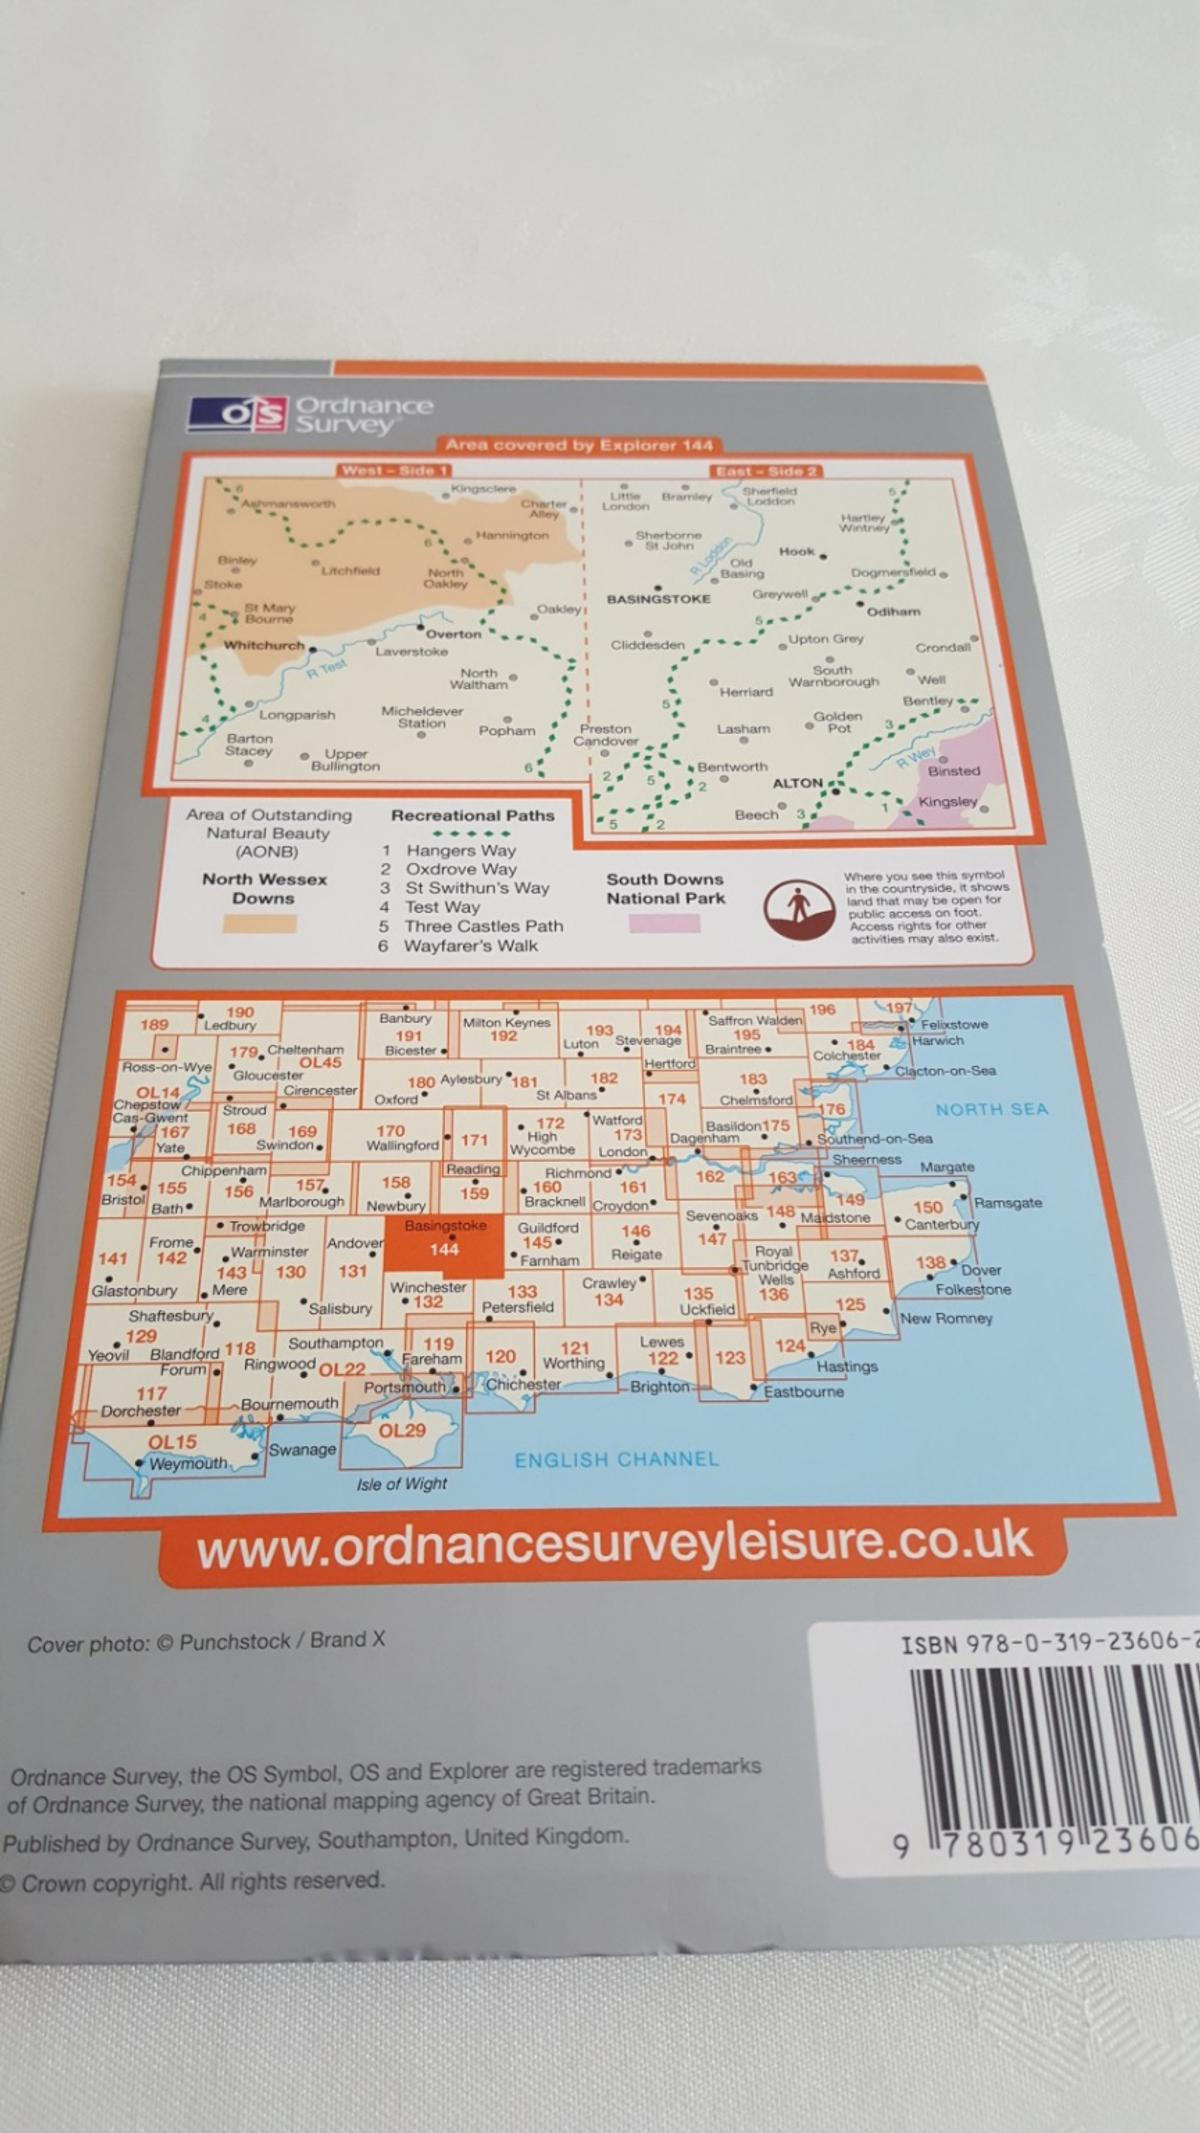 Like new. It covers Basingstoke, Alton, Witchurch, Odiham, Overton and hook. Costs £10. Collection in person.